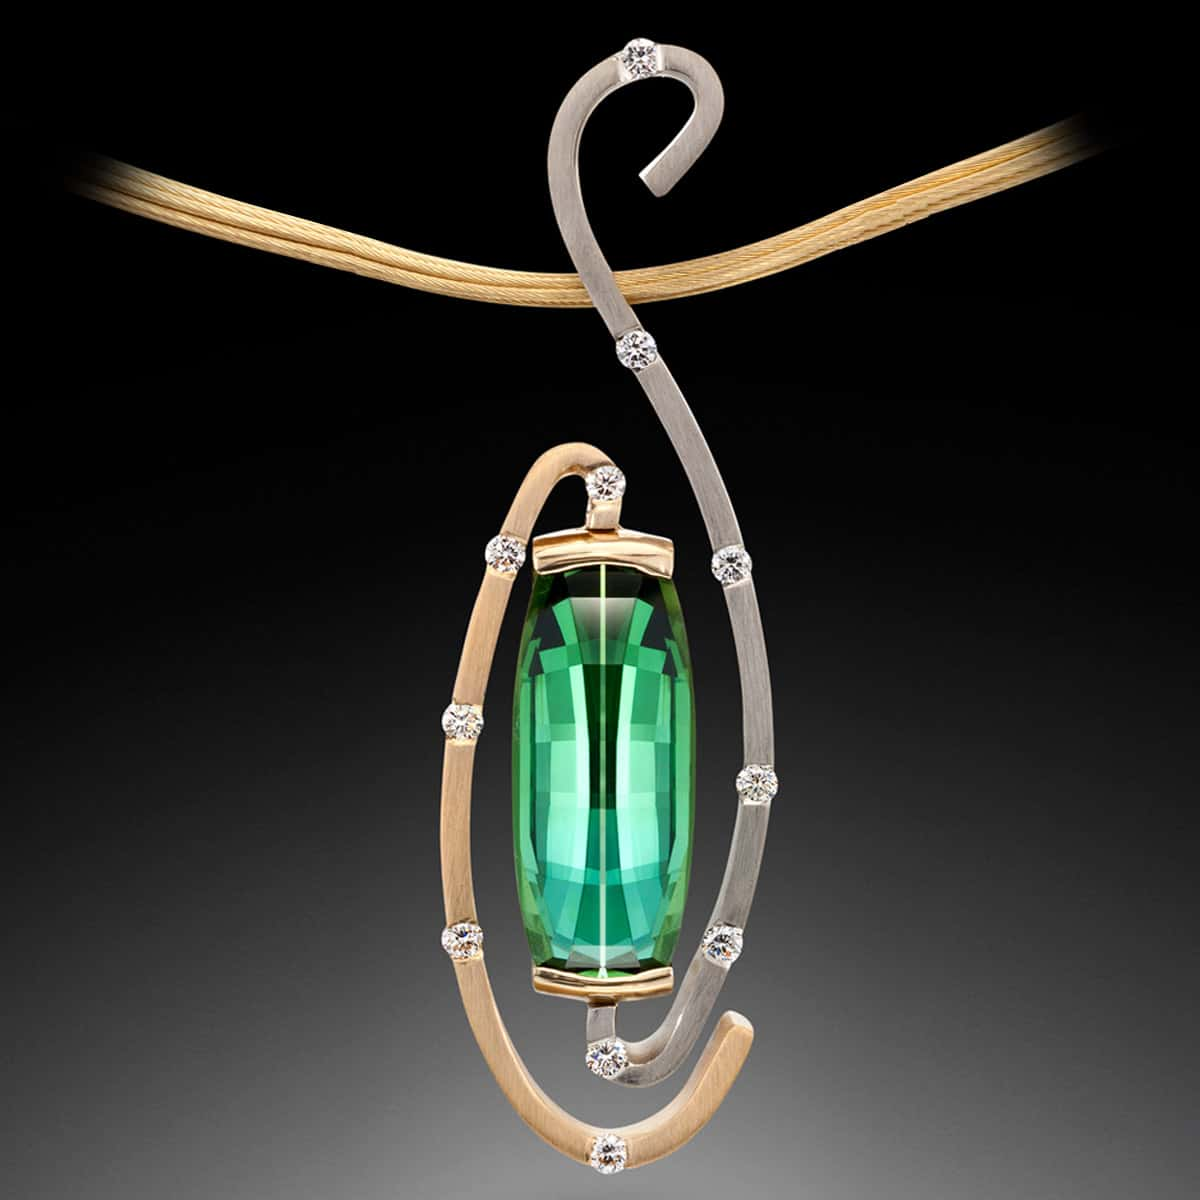 exquisite pendant